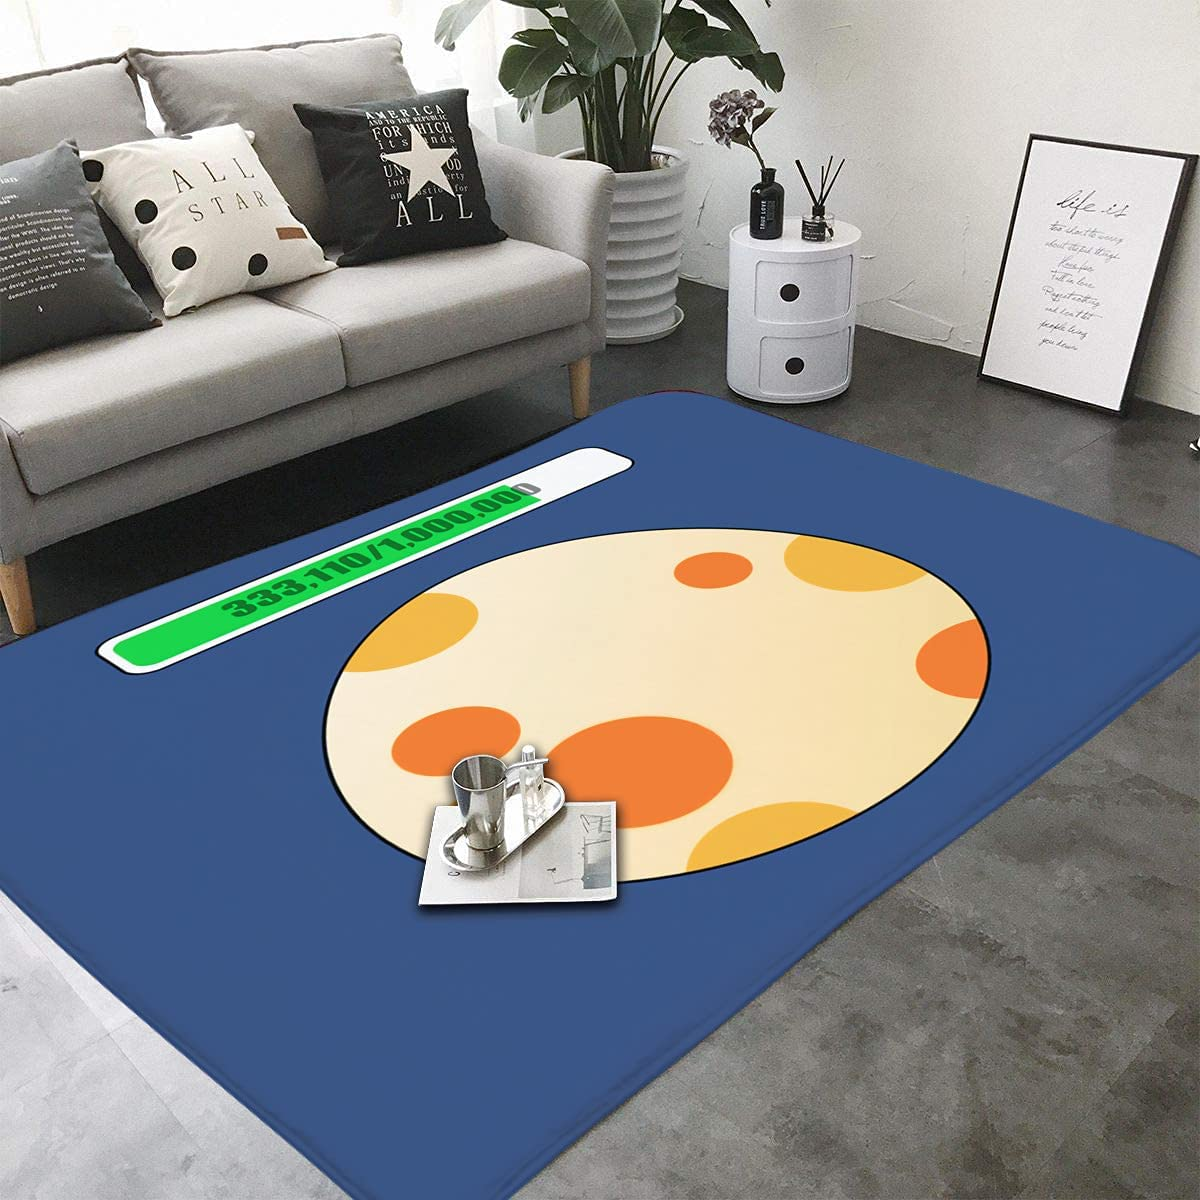 I Hope It's A Dedication Shiny-Kids Rugs Bedroom for Chair Playroom Special sale item Carpet